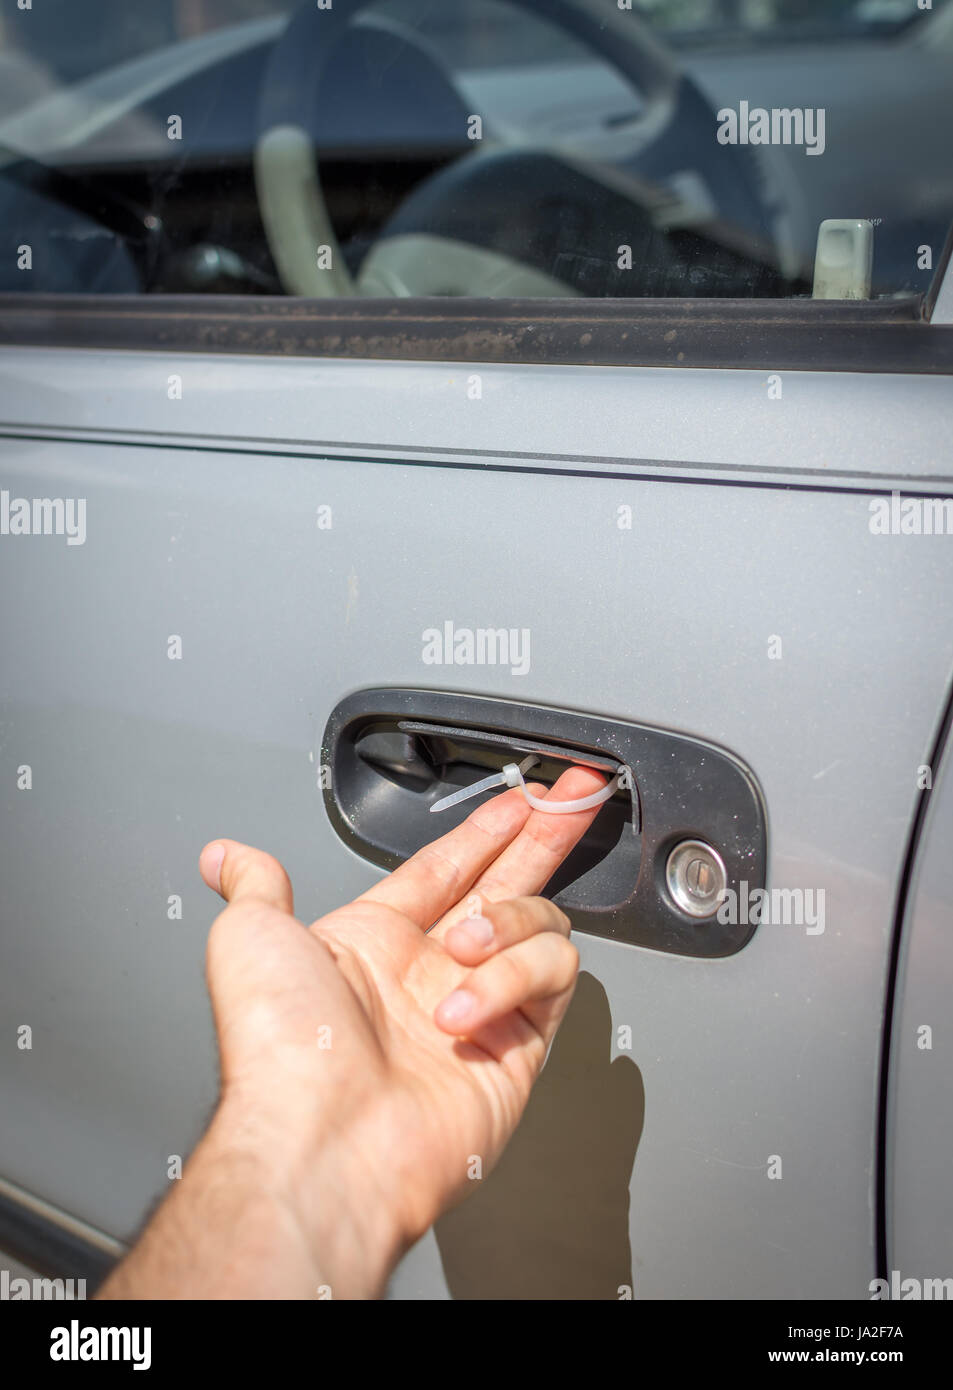 A makeshift car door handle fix using a simple zip tie looped through drilled holes. - Stock Image